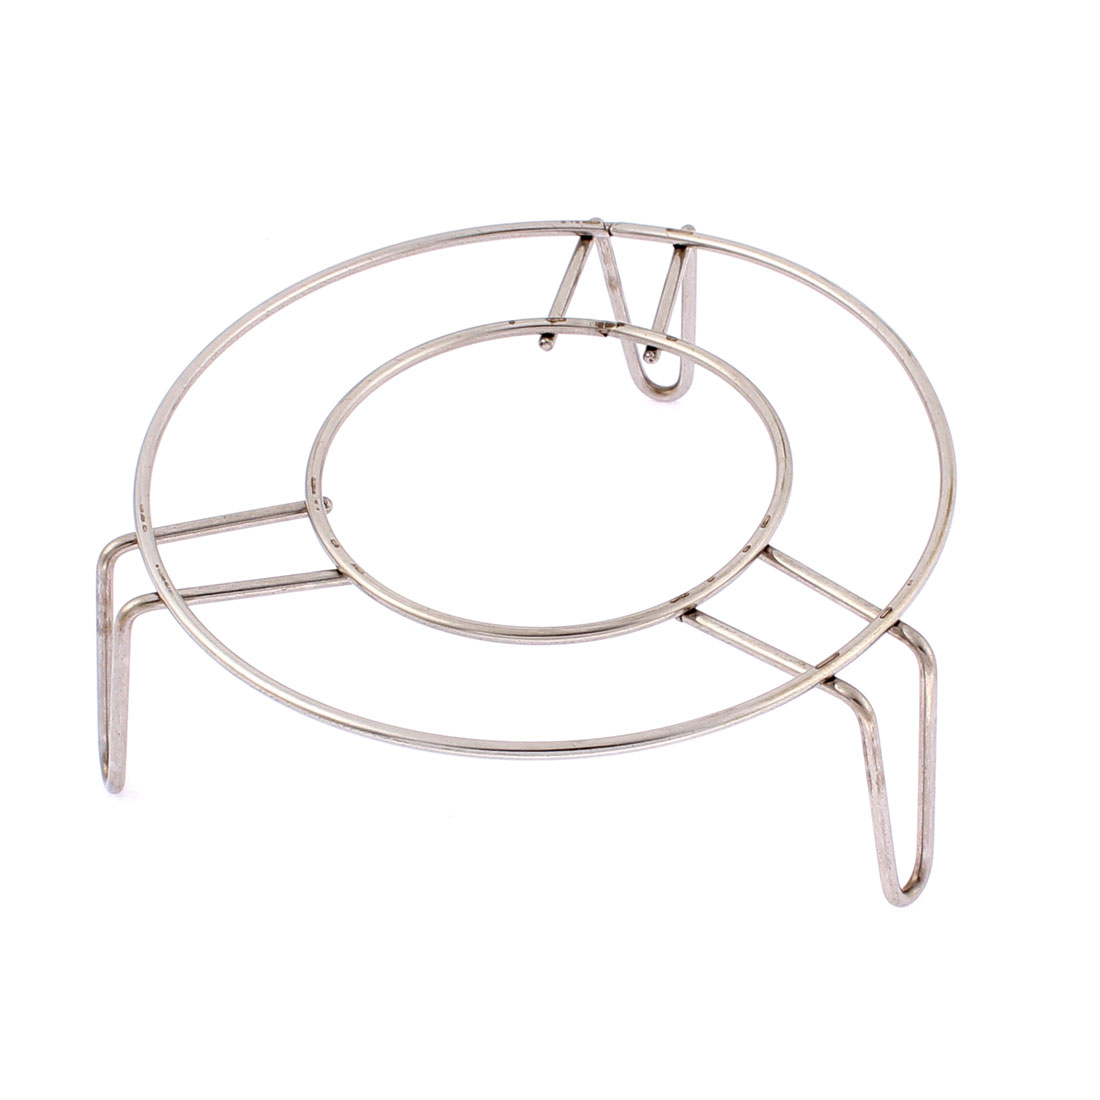 Household Stainless Steel Round Steaming Rack Stand 5 Inch x 2 Inch